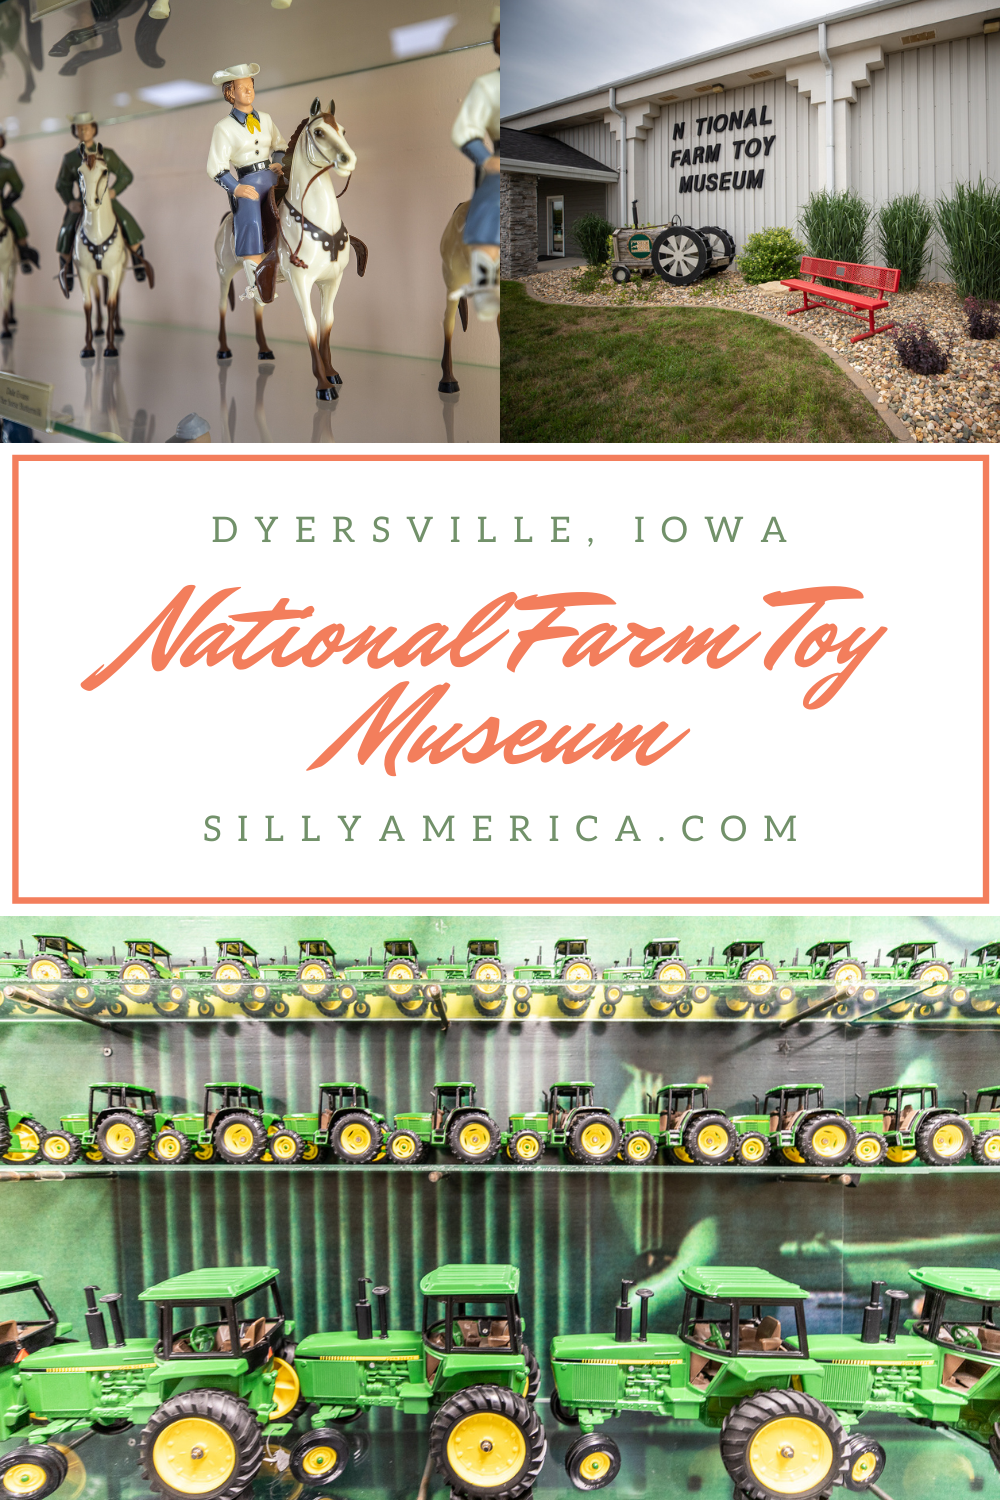 Tractors and horses and tractors and barns and tractors and machines and tractors. If you love tractors, toys, or fun museums check out the National Farm Toy Museum in Dyersville, Iowa - the Farm Toy Capital of the World! #IowaRoadsideAttractions #IowaRoadsideAttraction #RoadsideAttractions #RoadsideAttraction #RoadTrip #IowaRoadTrip #IowaThingsToDo #IowaRoadTripBucketLists #IowaBucketList #IowaRoadTripIdeas #IowaTravel